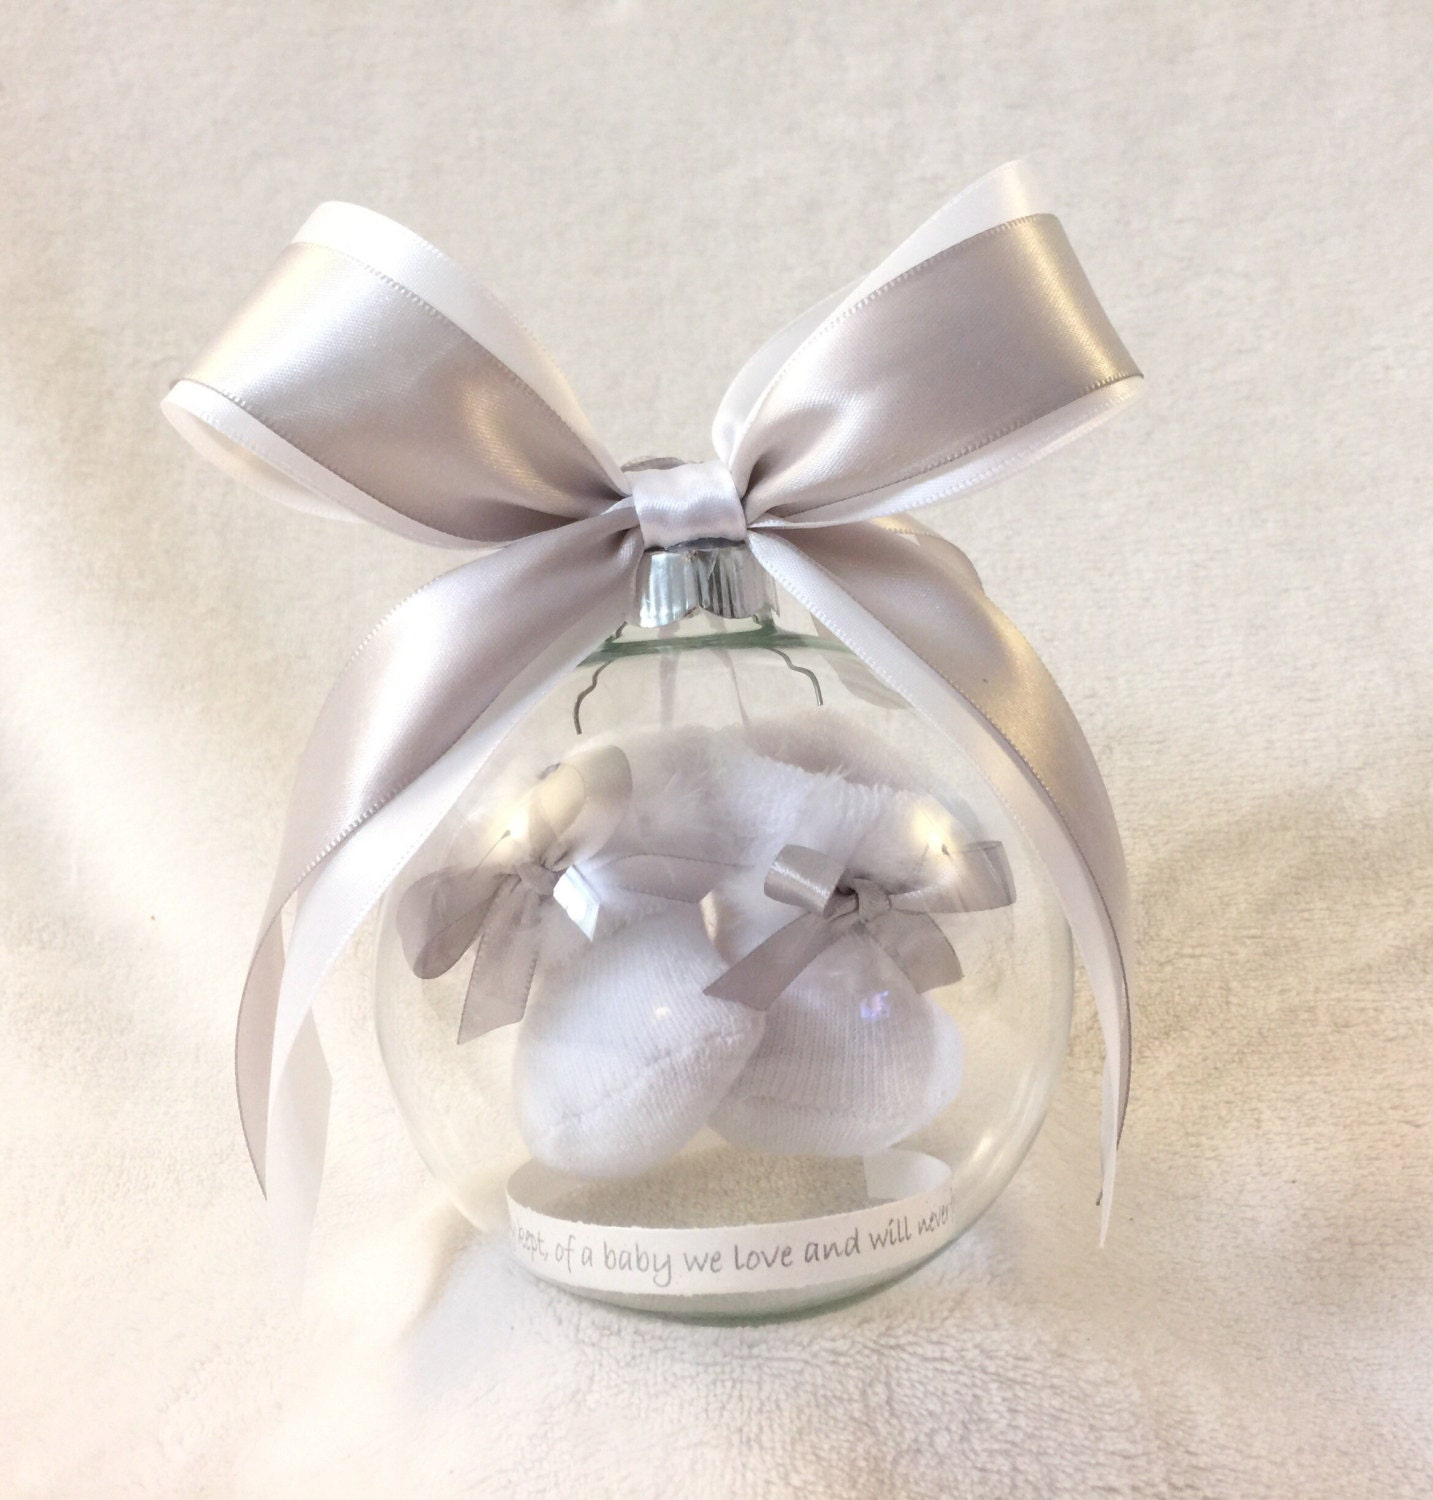 Baby ornament - Pregnancy Loss Miscarriage Ornament With Floating Baby Booties Angel Baby Memorial Ornament With Bible